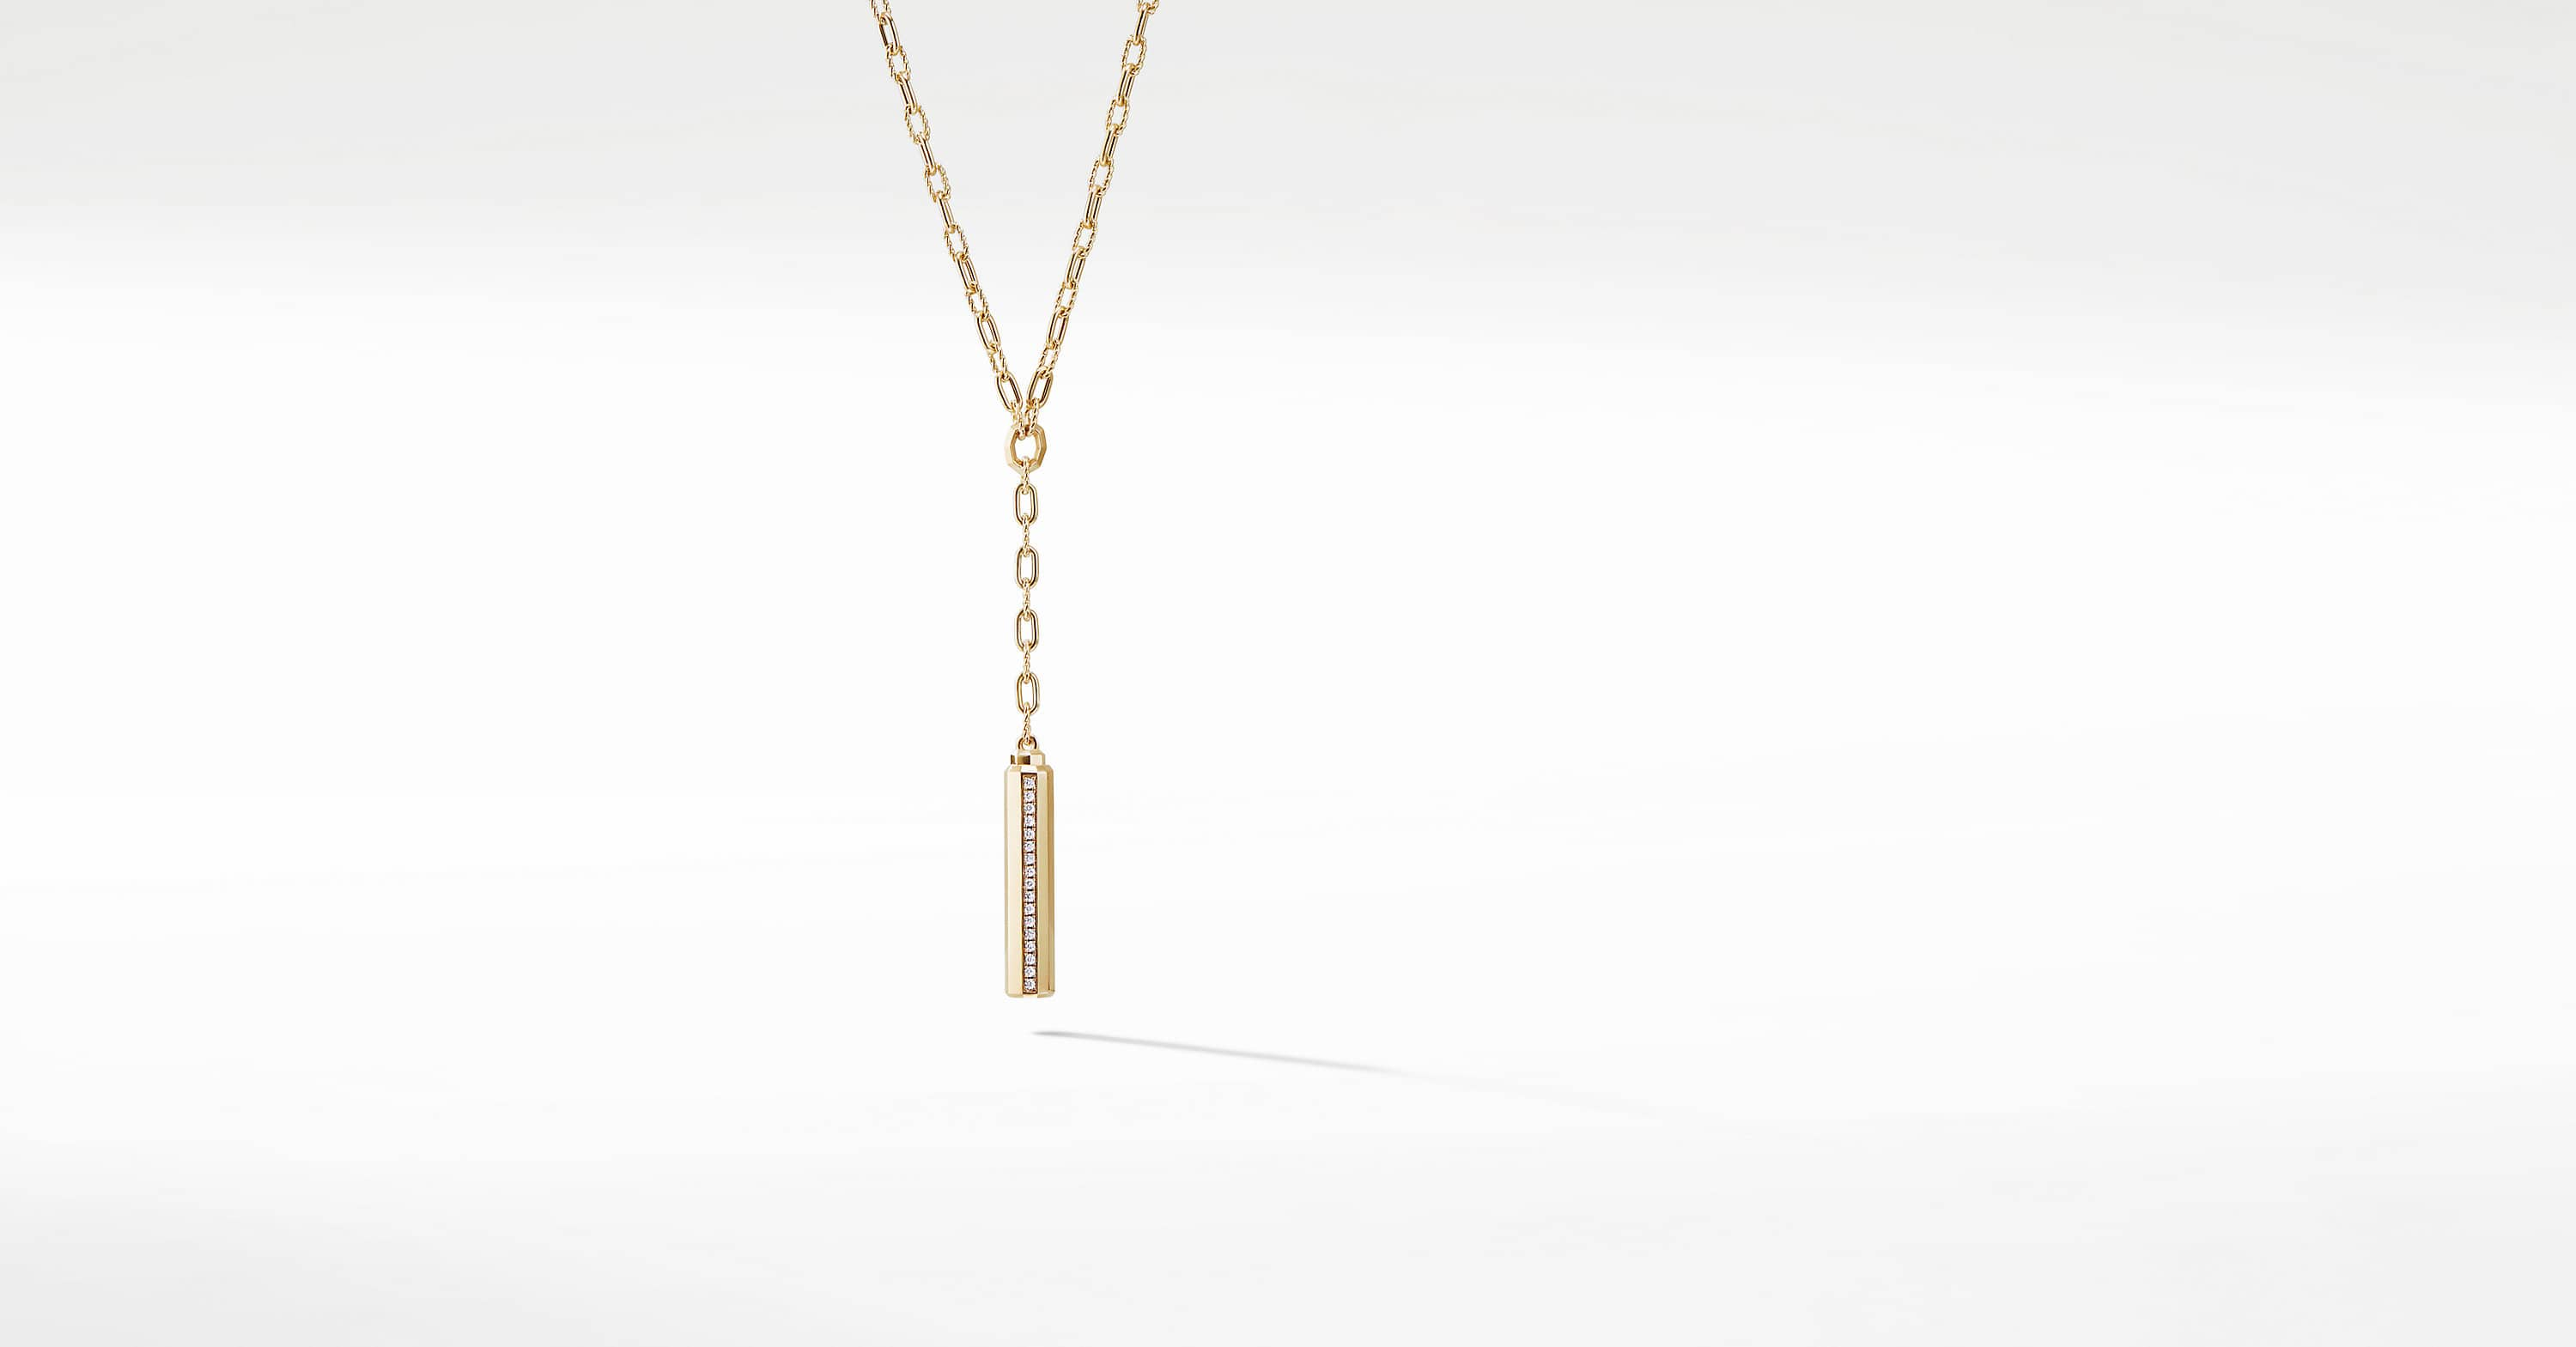 Barrels Y Necklace with Diamonds in 18K Gold